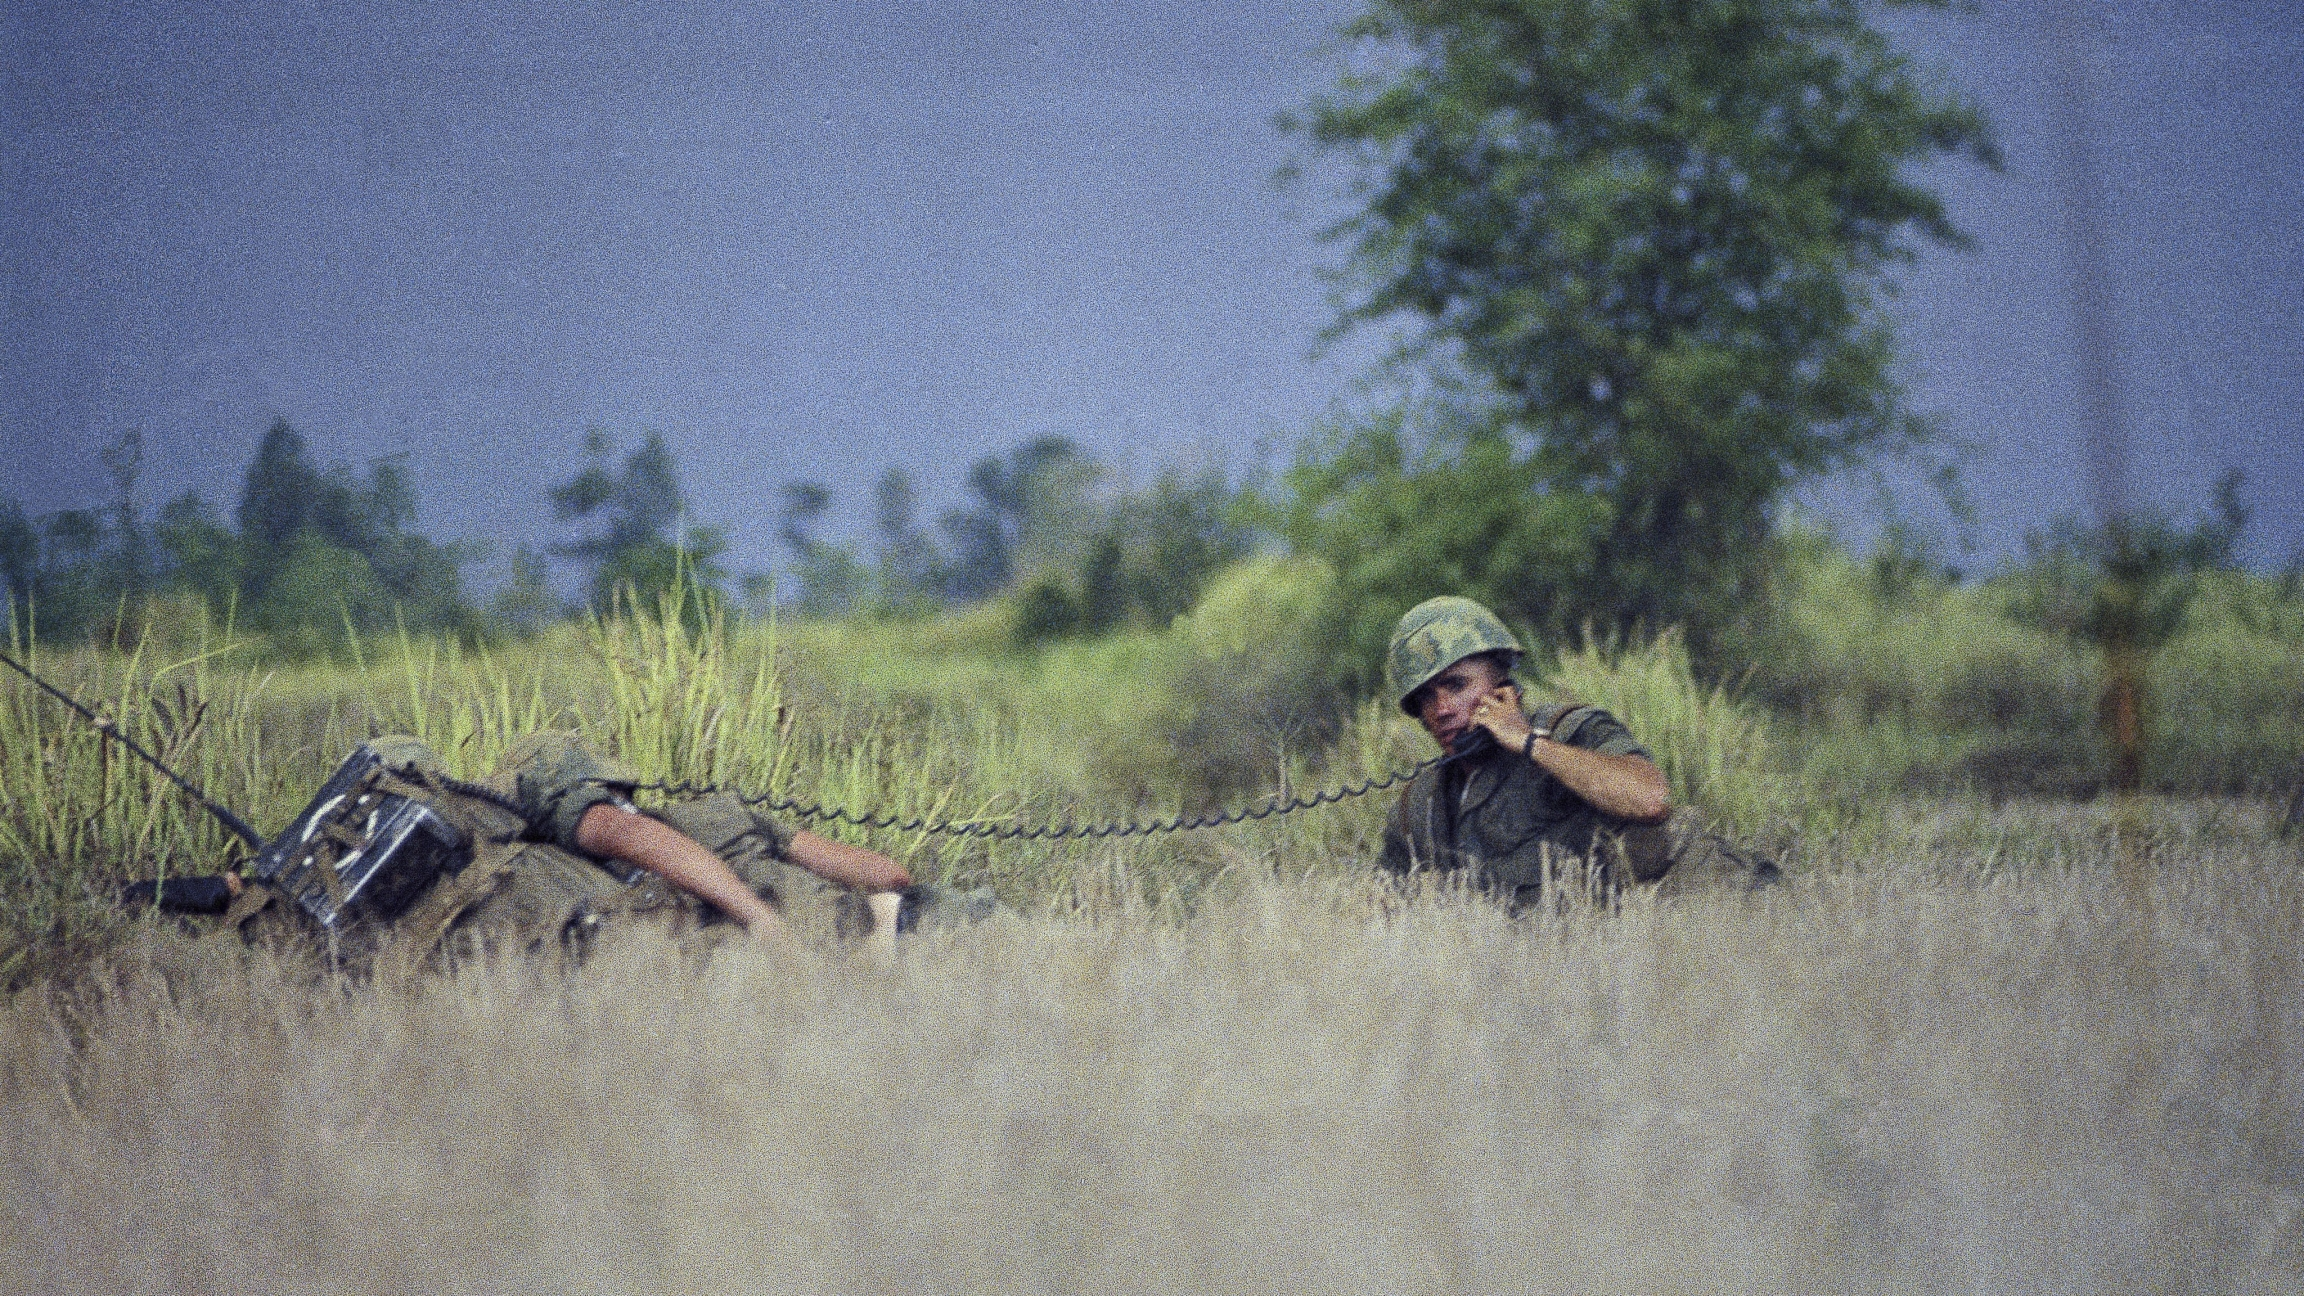 Two men in camouflage carry guns in a rice paddy in Vietnam.